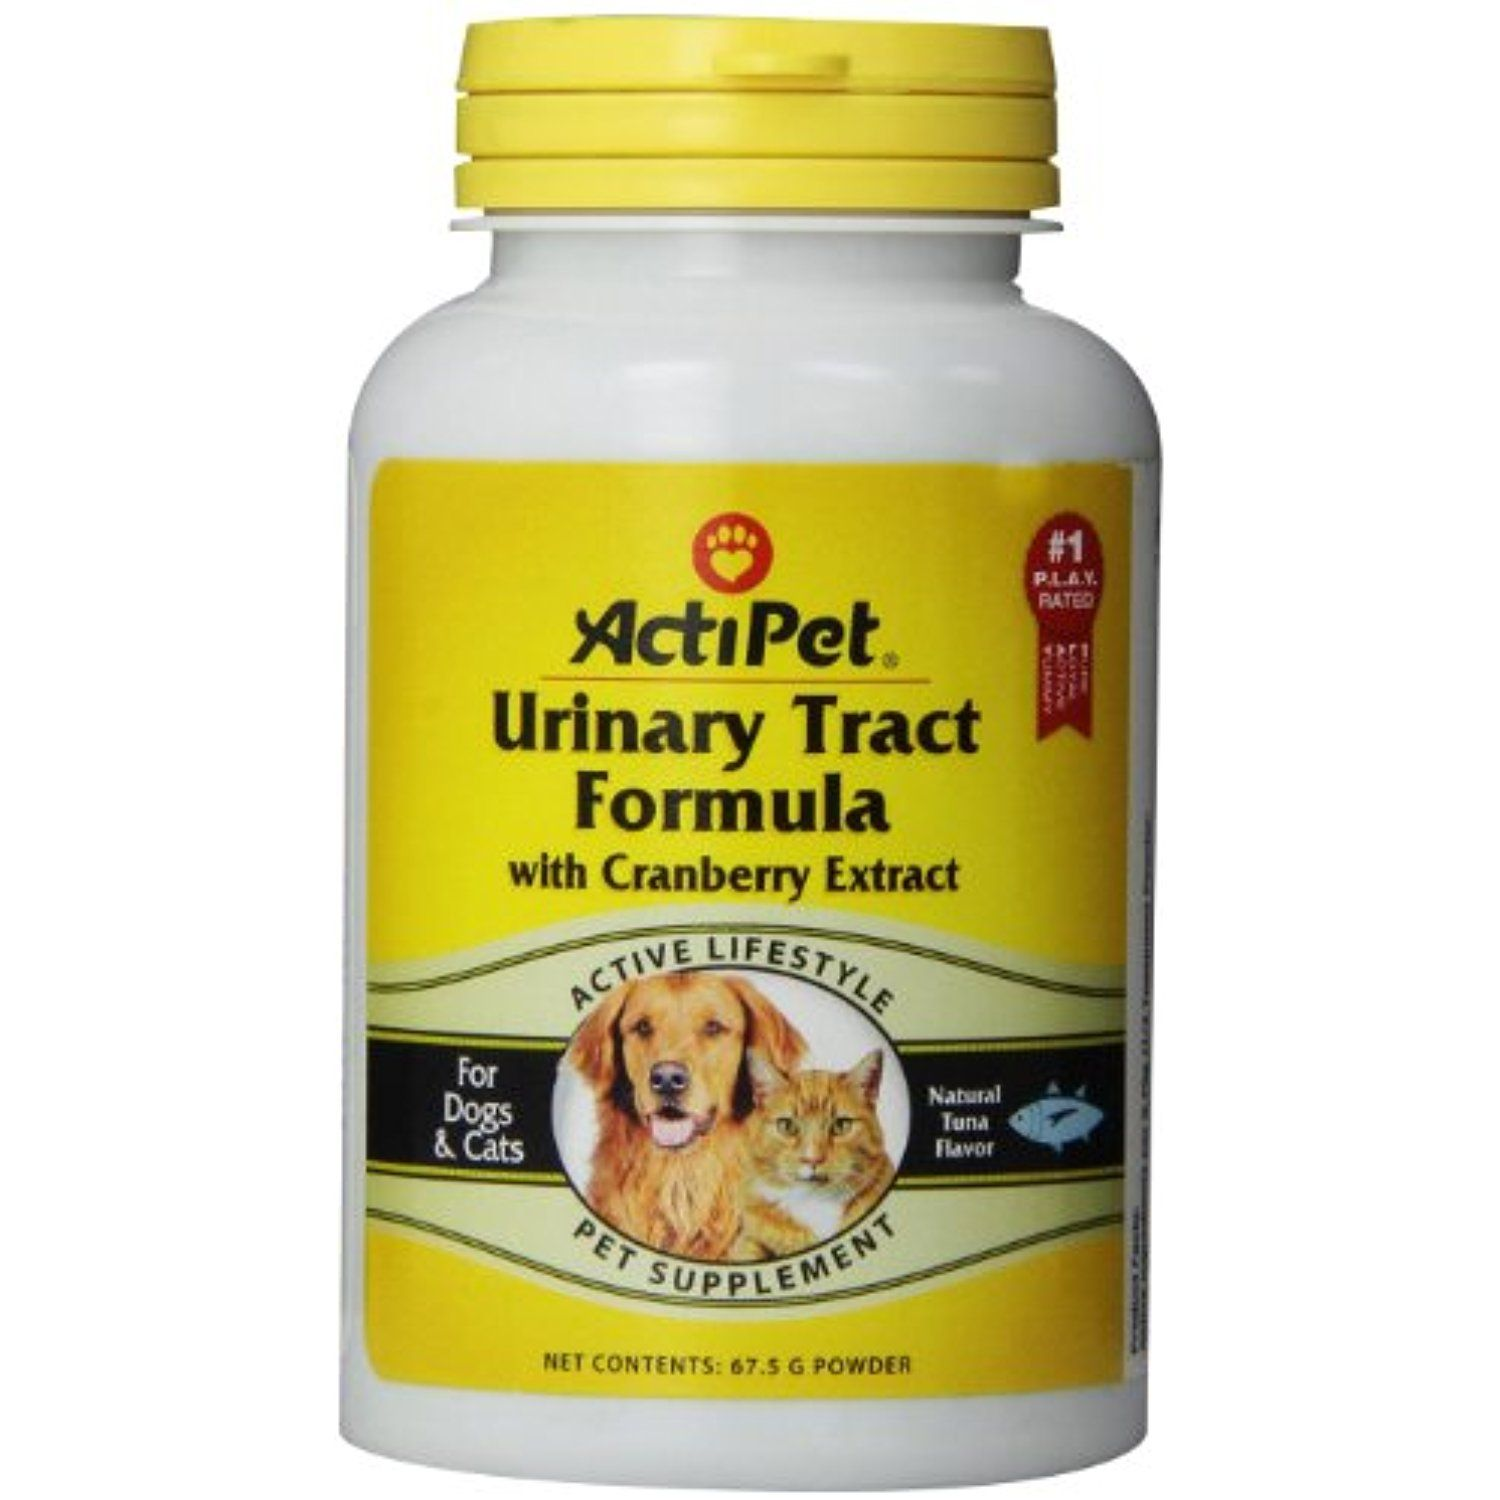 Urinary Tract Formula For Dogs Cats Powder 67 5 Grams You Could Get More Details By Clicking On The Image Urinary Tract Dog Supplies Online Dog Dry Skin